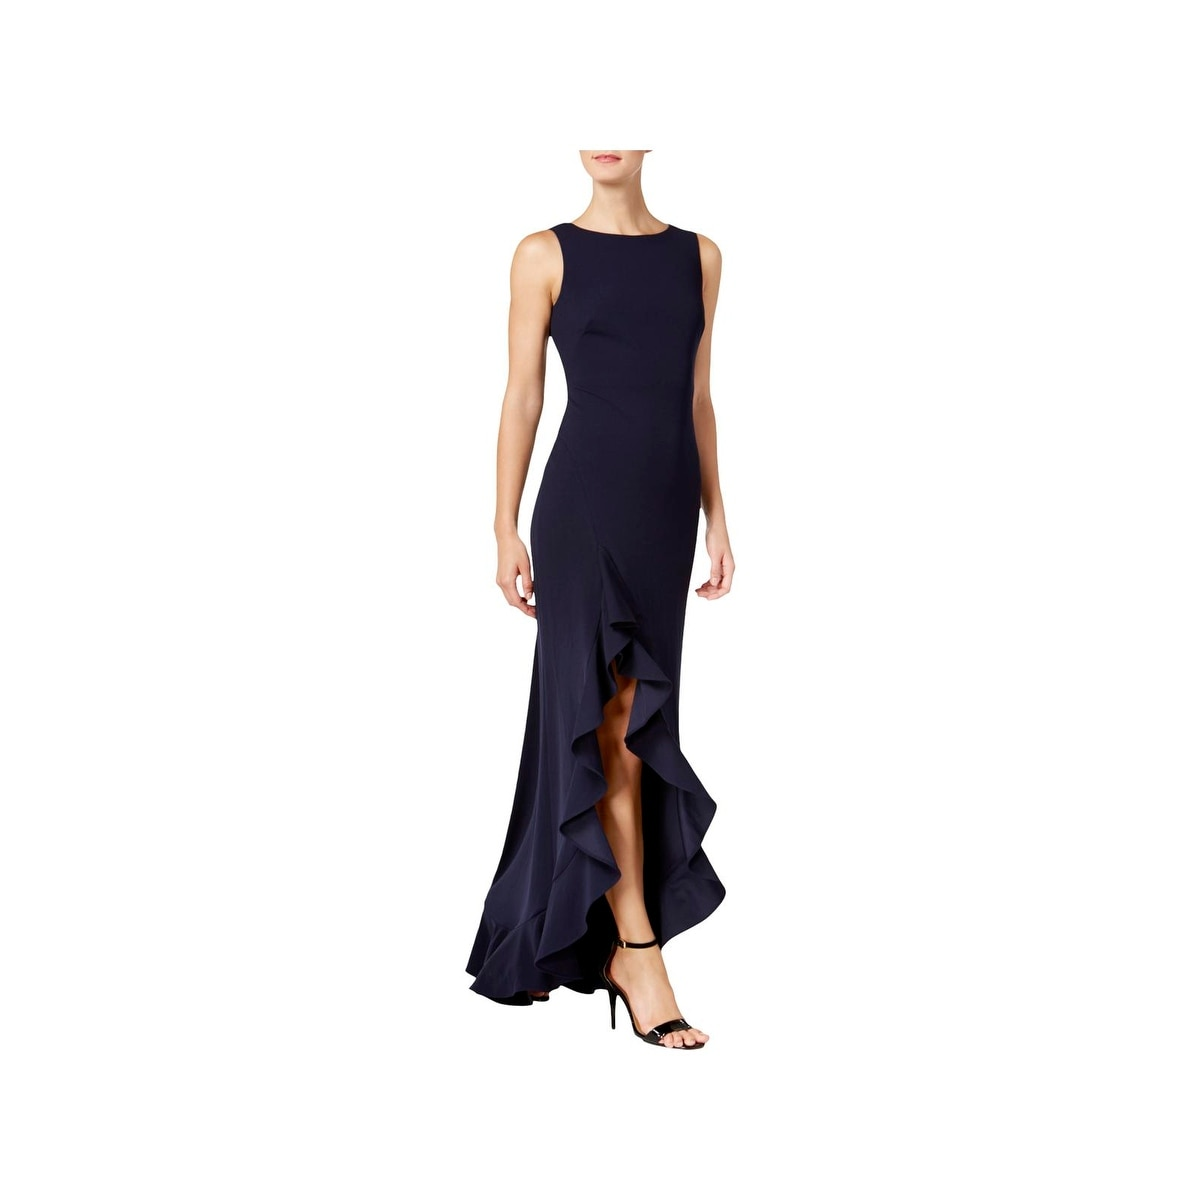 ccceb48ce706 Calvin Klein Dresses | Find Great Women's Clothing Deals Shopping at  Overstock